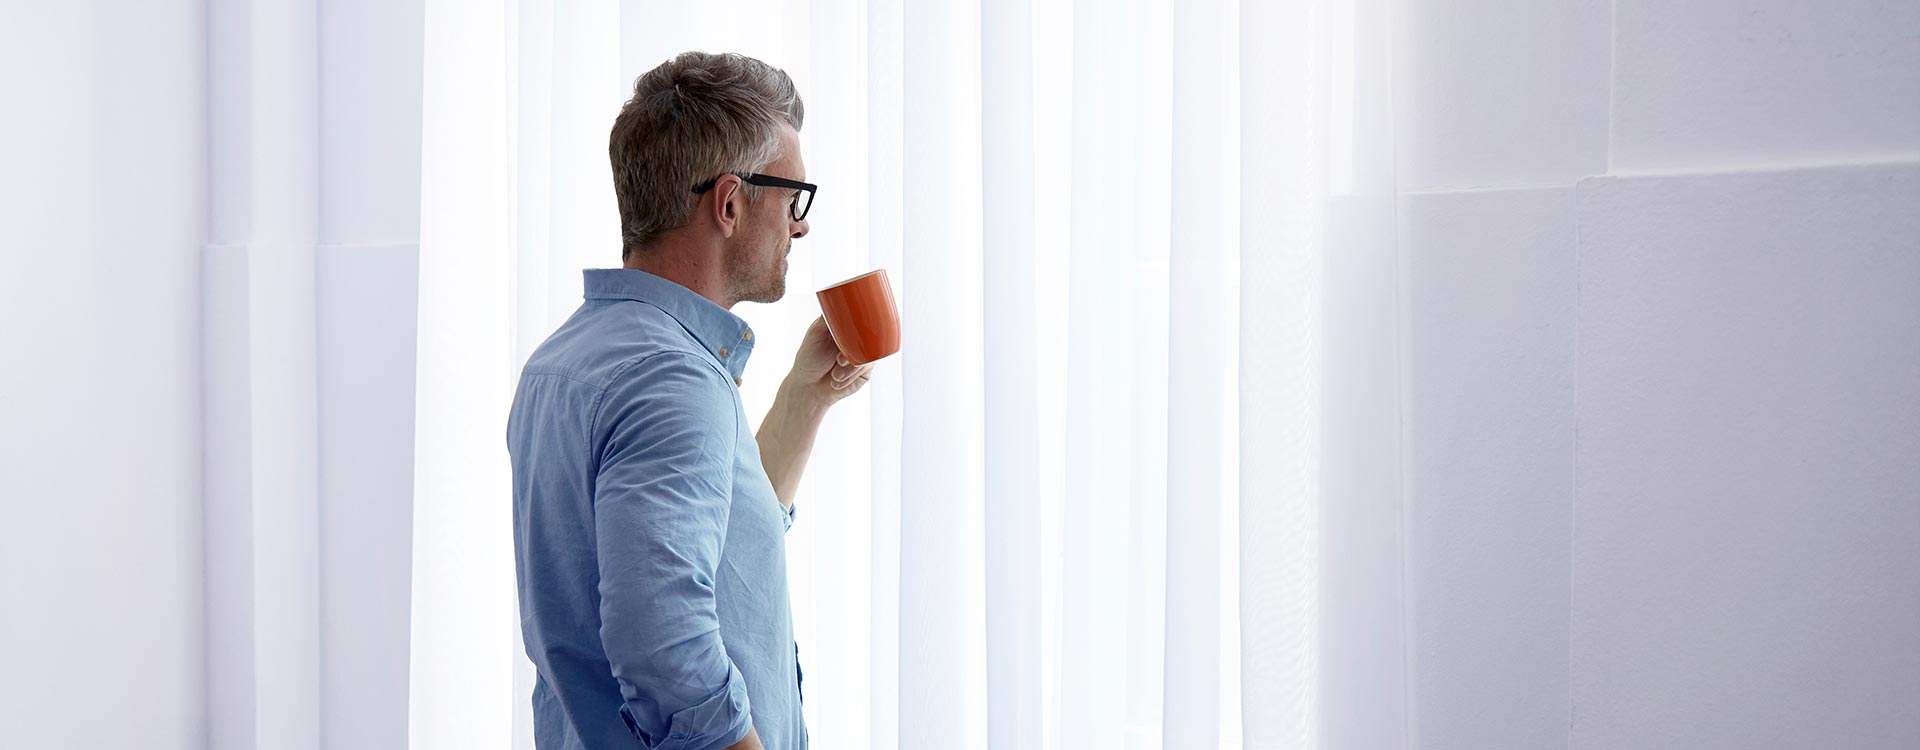 Male Professional Thinking while Drinking Coffee